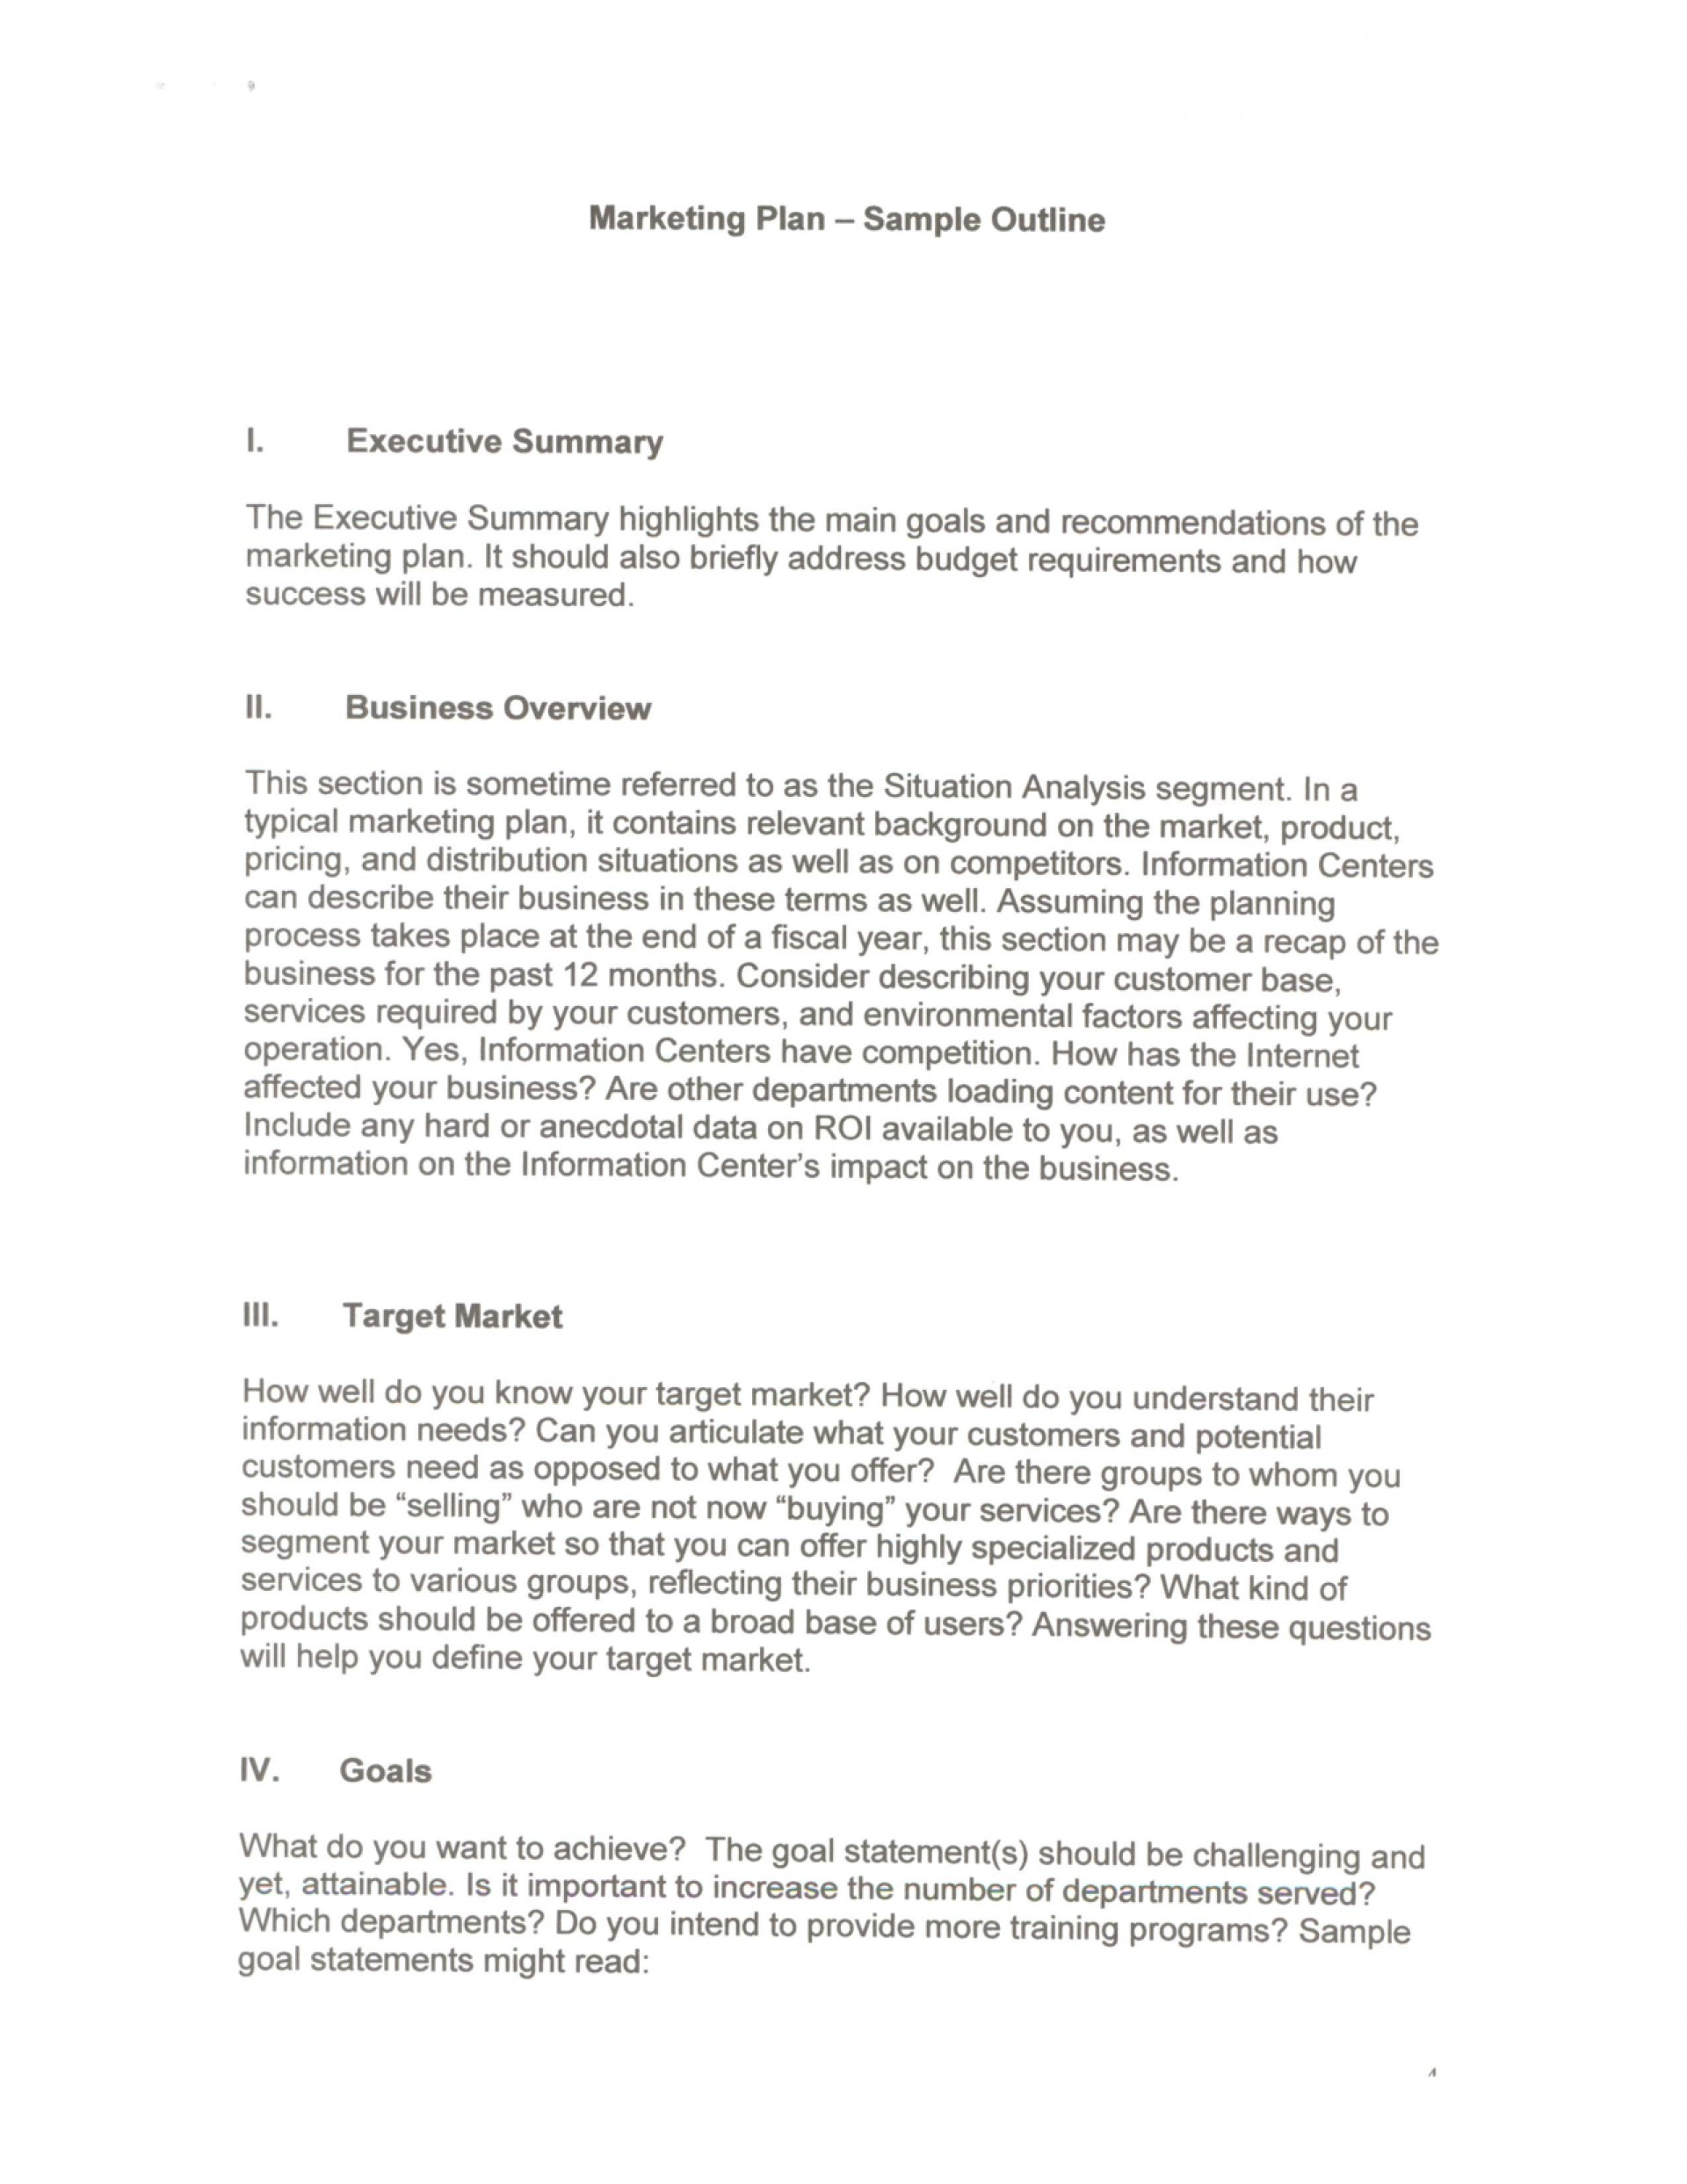 016 Research Paper Executive Summary Marketing Plan Example 384040 Amazing Apa 1920